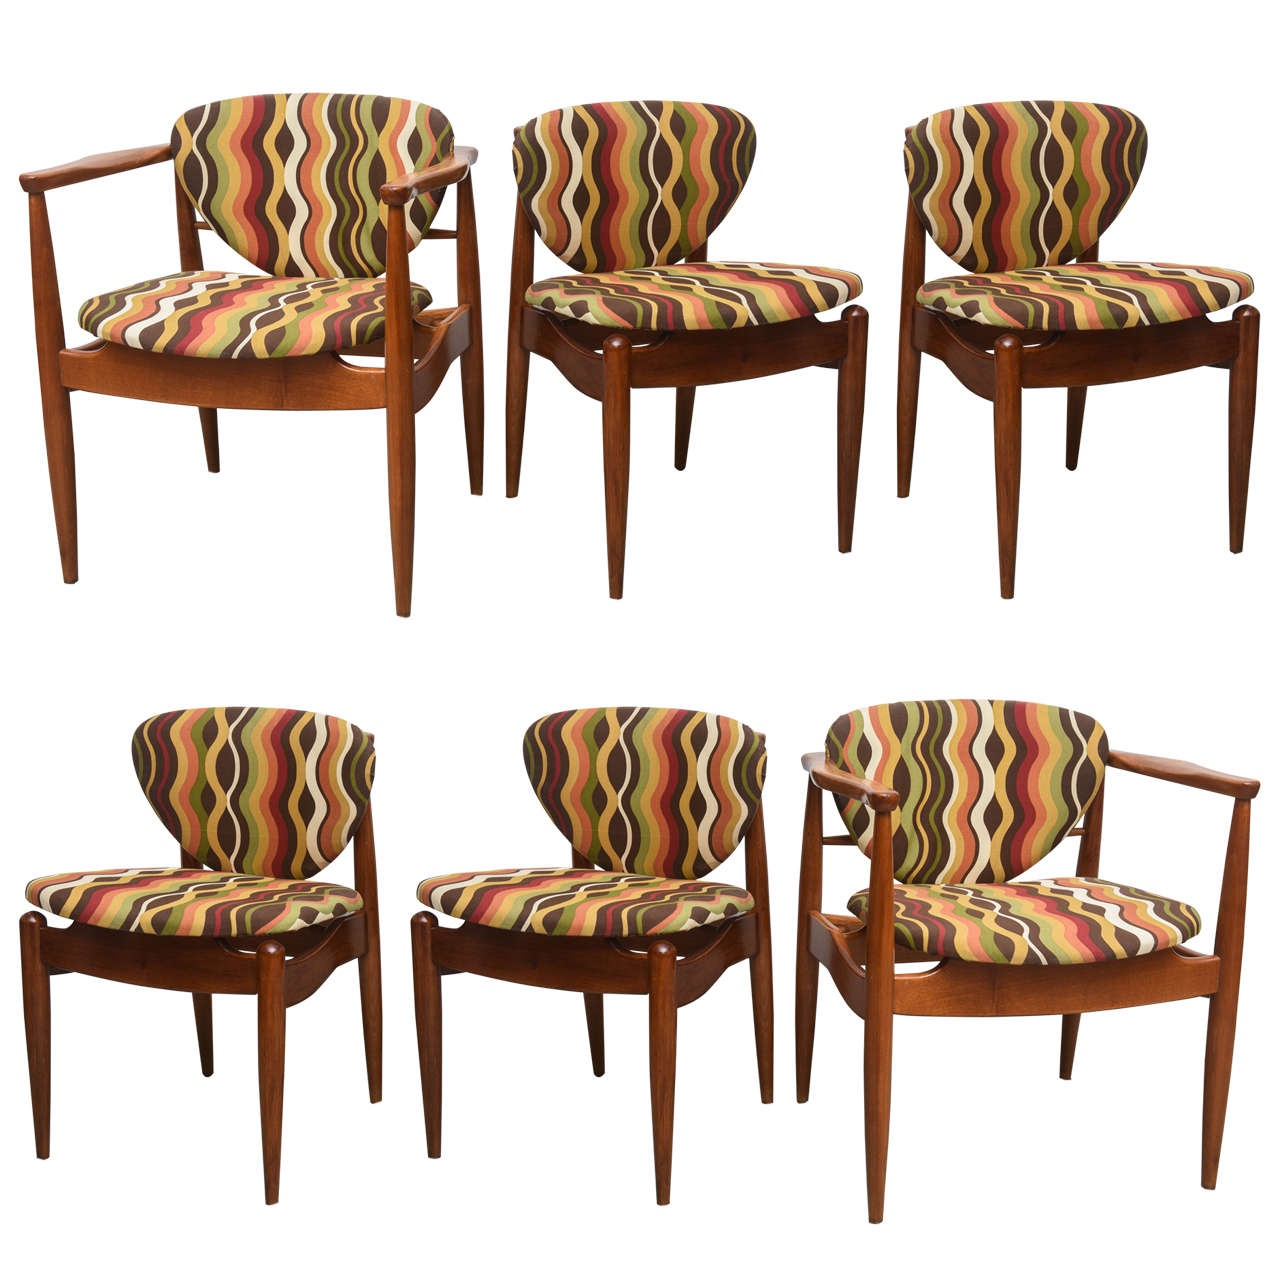 Sensational Danish Set Of Six Teak Dining Chairs 1960S Ocoug Best Dining Table And Chair Ideas Images Ocougorg